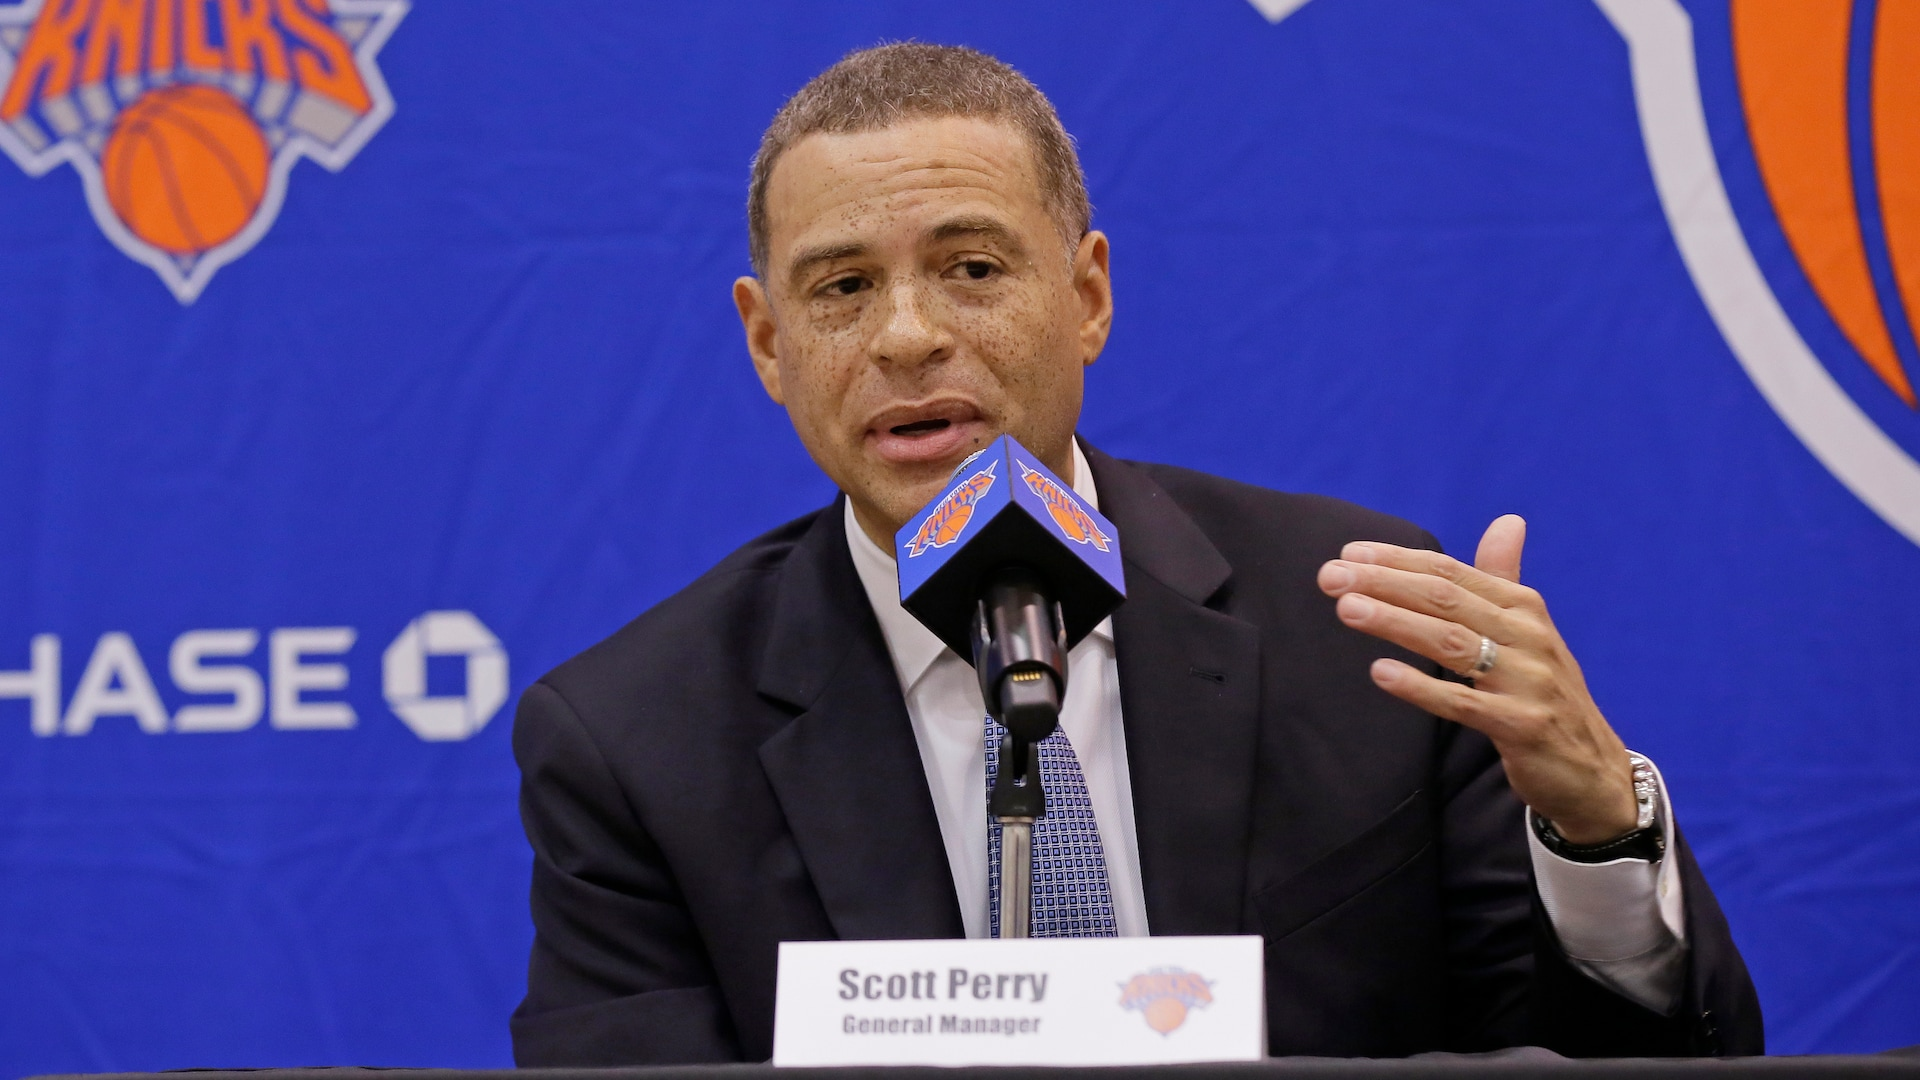 Knicks reach 1-year deal with GM Scott Perry